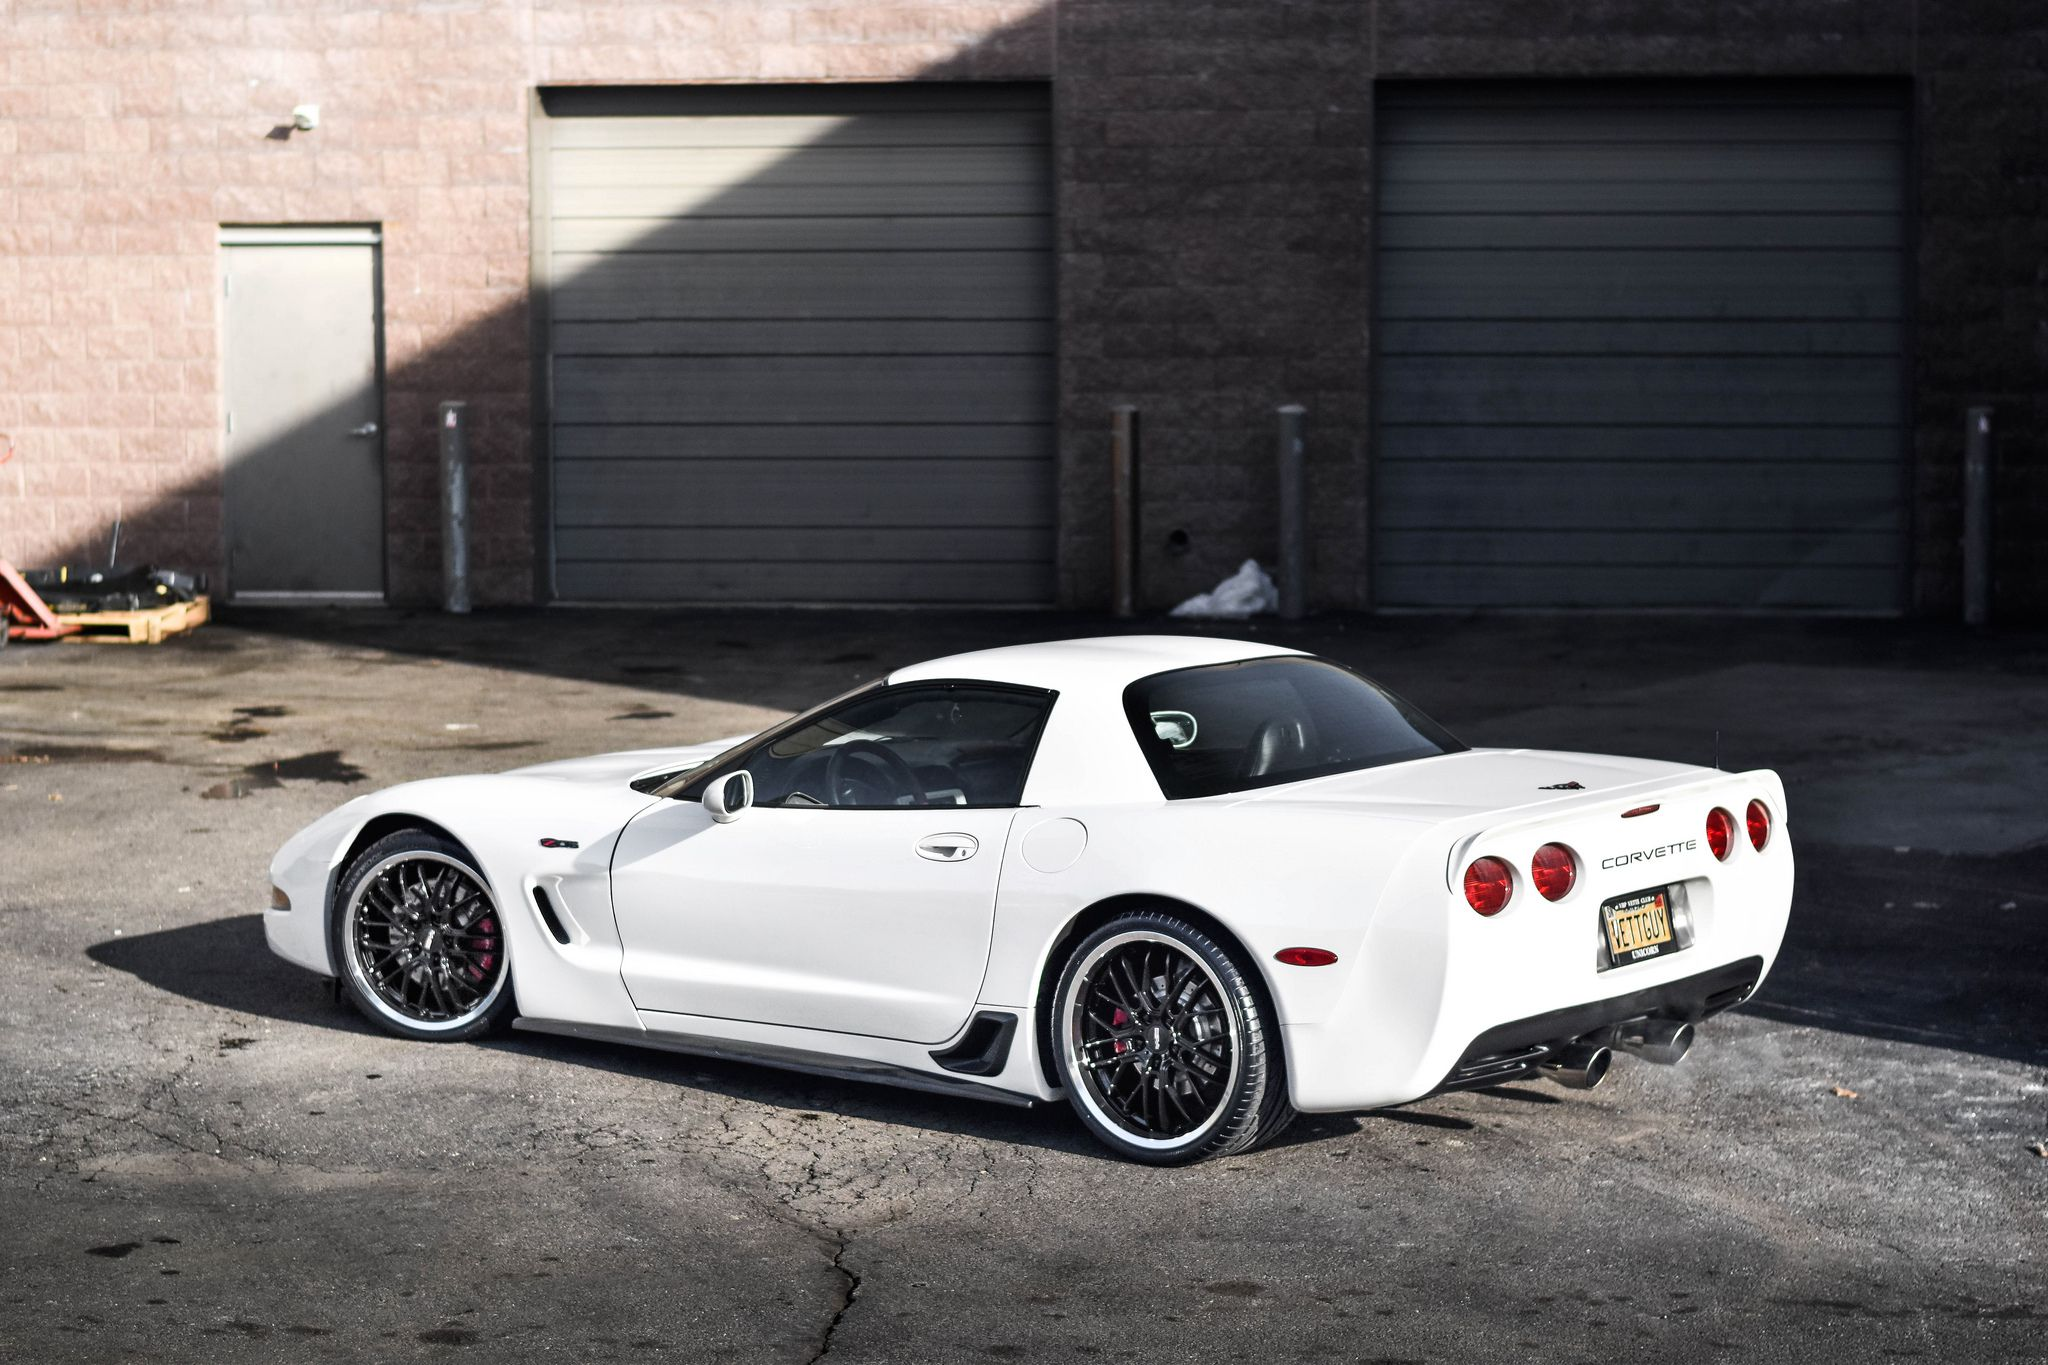 Chevrolet C5 Corvette Z06 - rear-side view